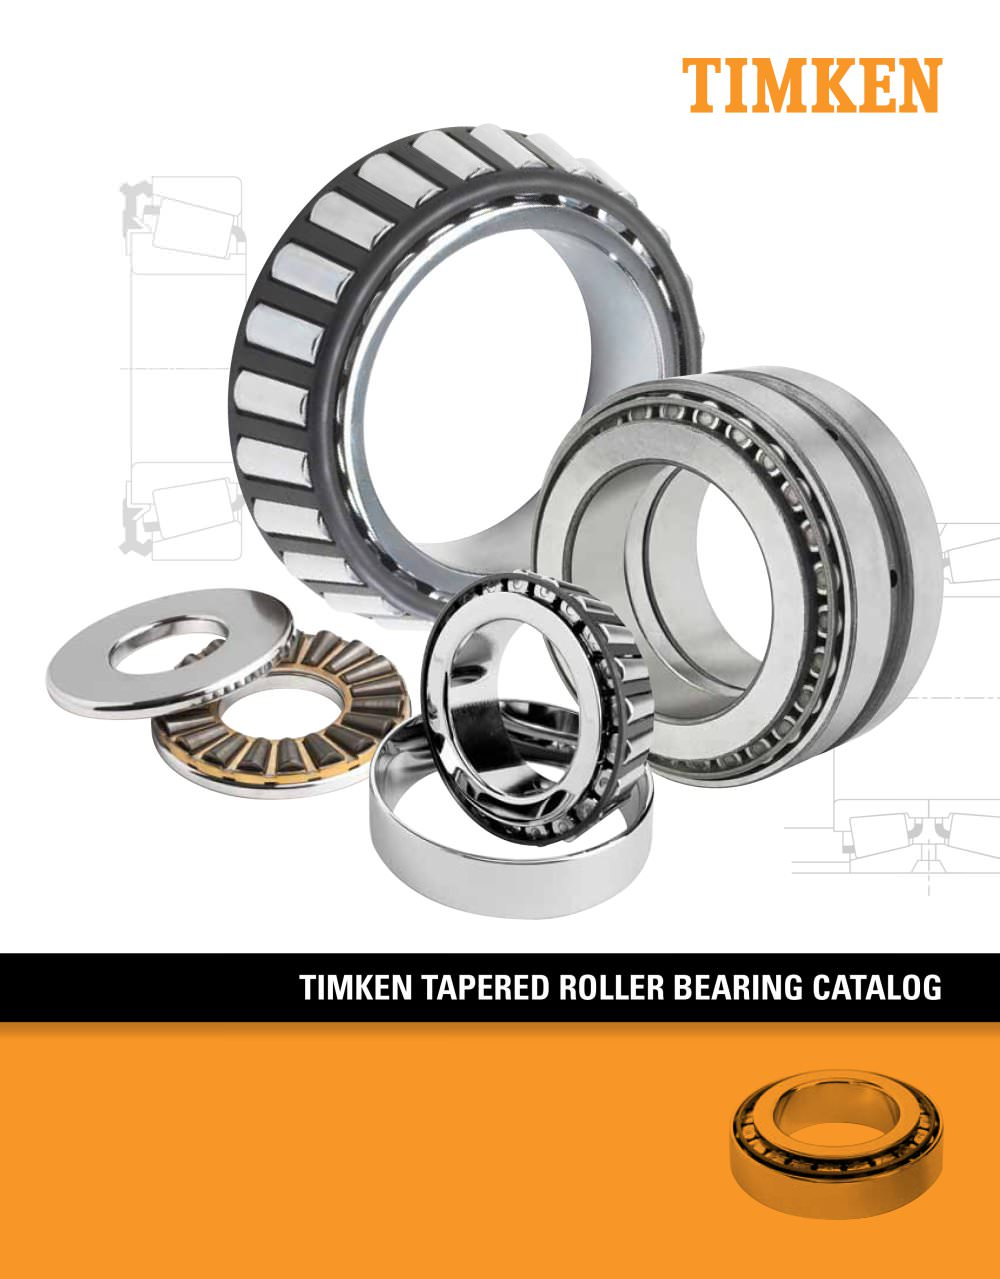 Timken Tapered Roller Bearing Catalog 834 Pages